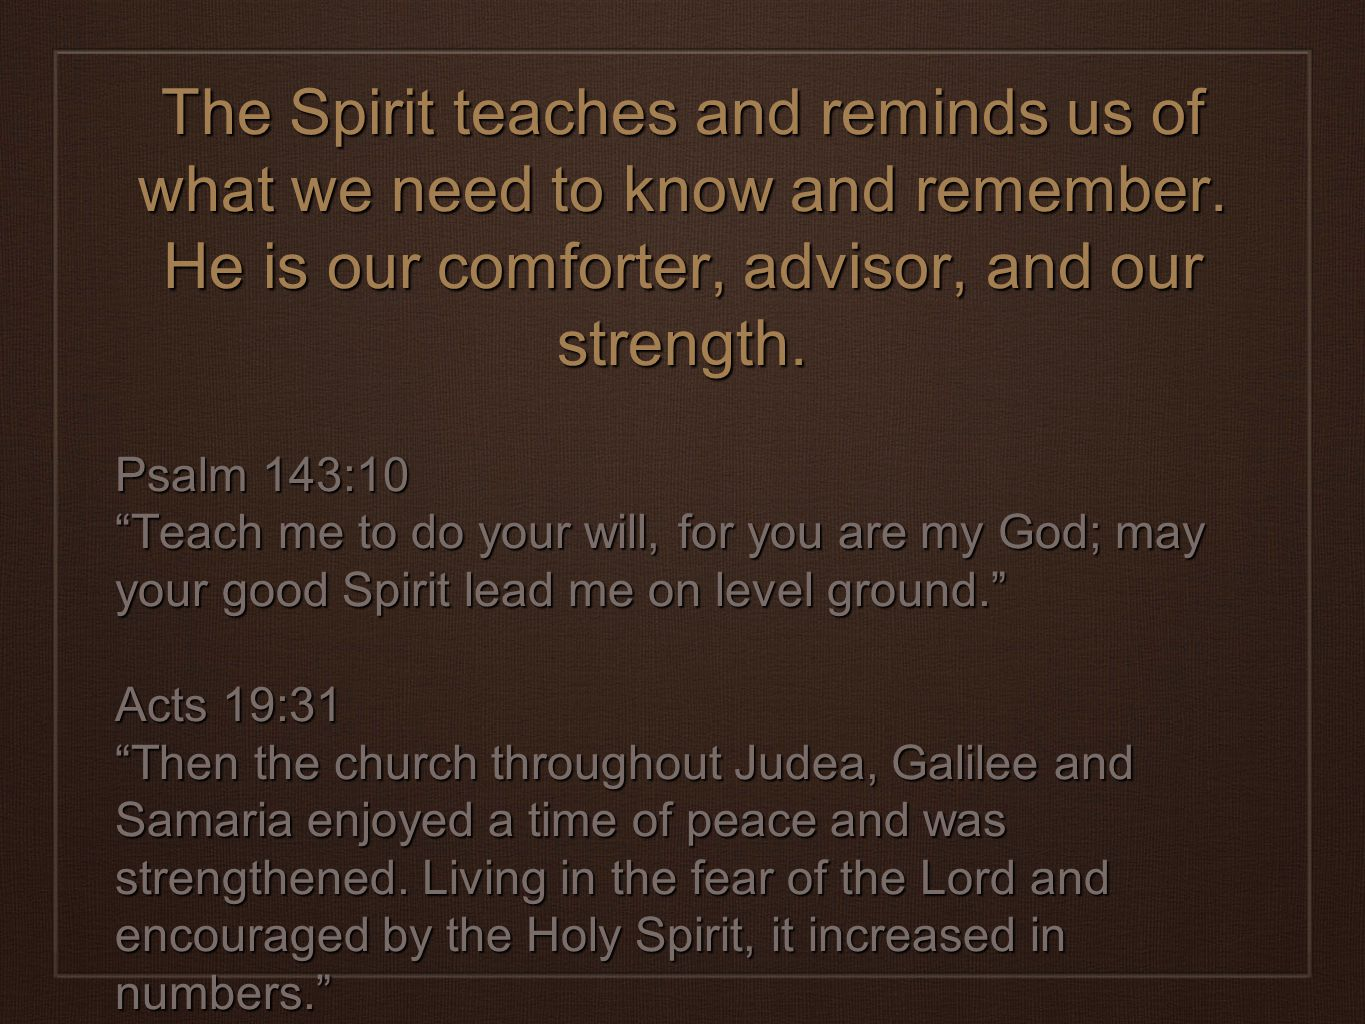 The Spirit teaches and reminds us of what we need to know and remember.